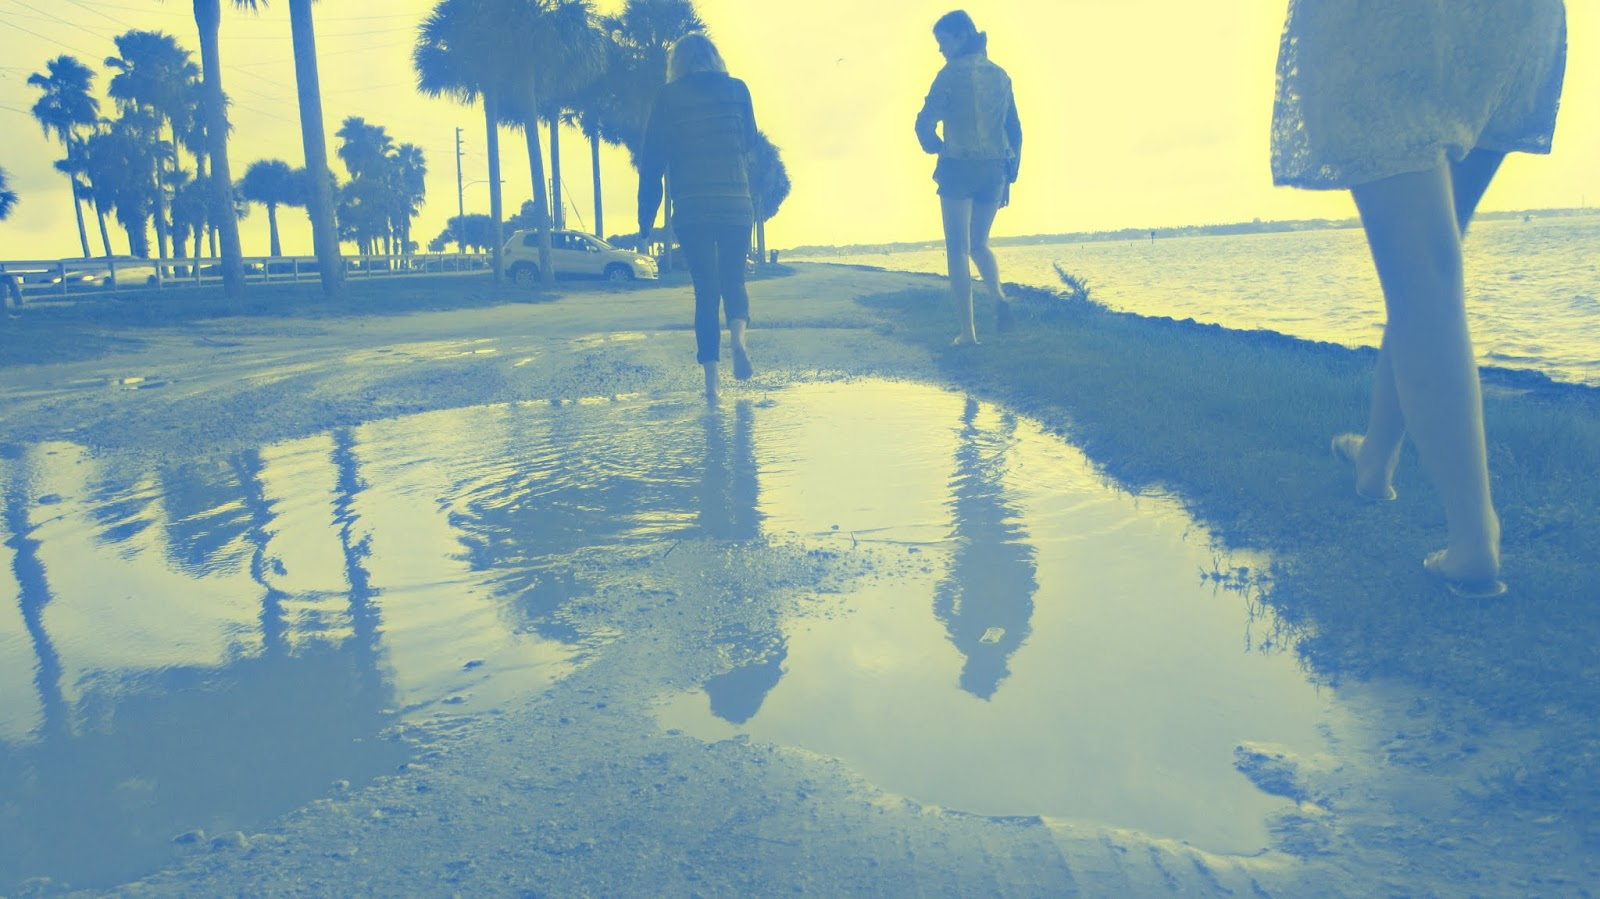 A Blue Photo Filter to Highlight the Beauty of Tide Pools at the Beach in Dunedin, Florida After a Rainstorm